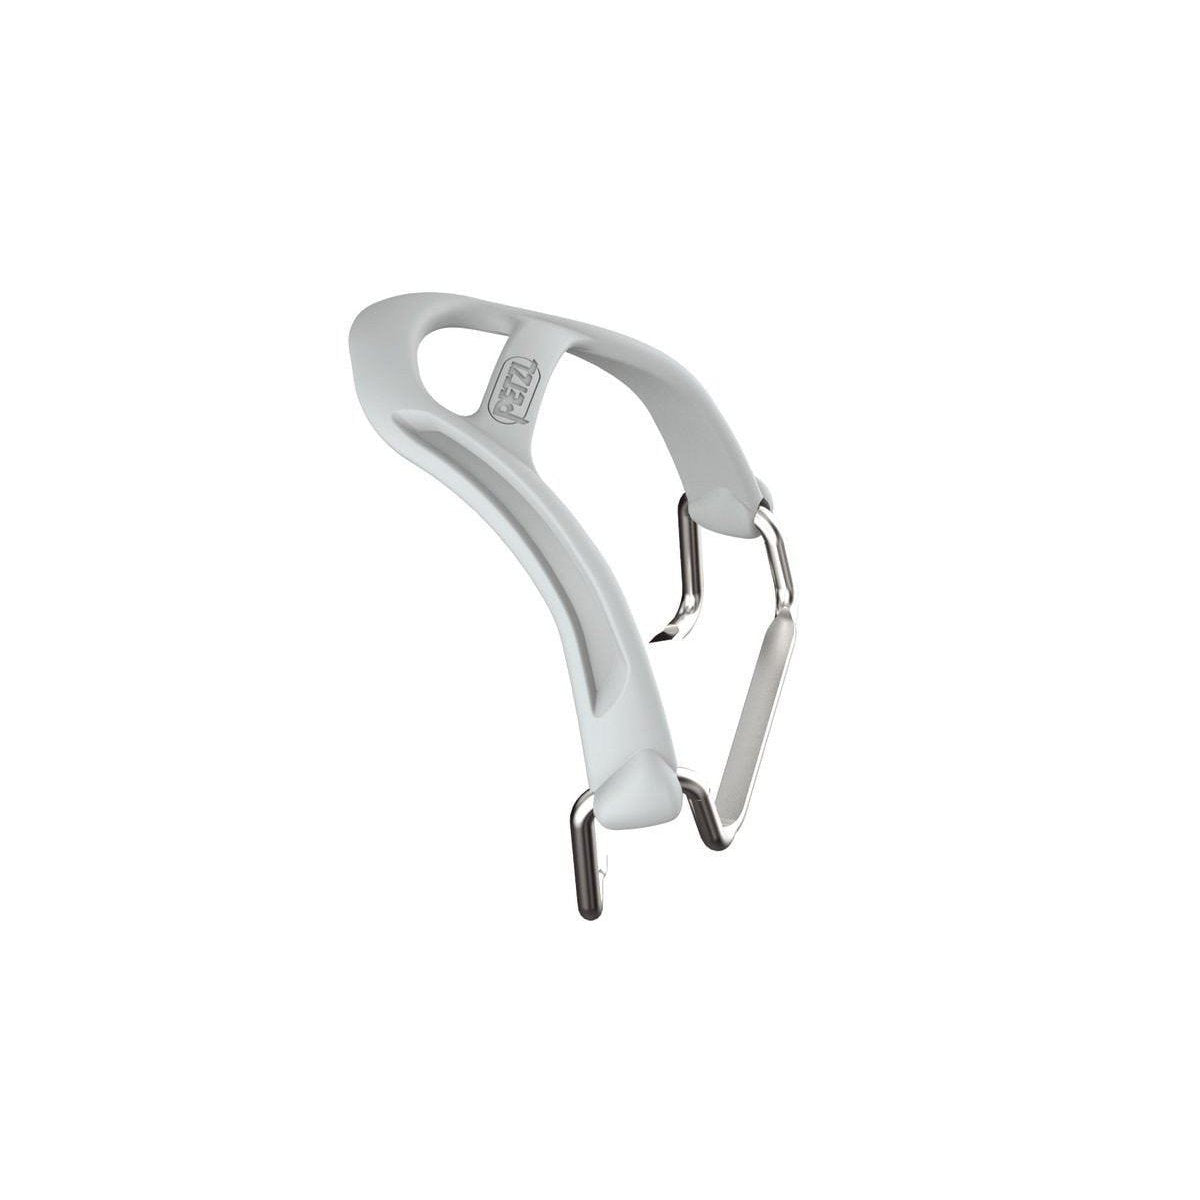 Petzl FIL Flex Toe Bail, in grey colour